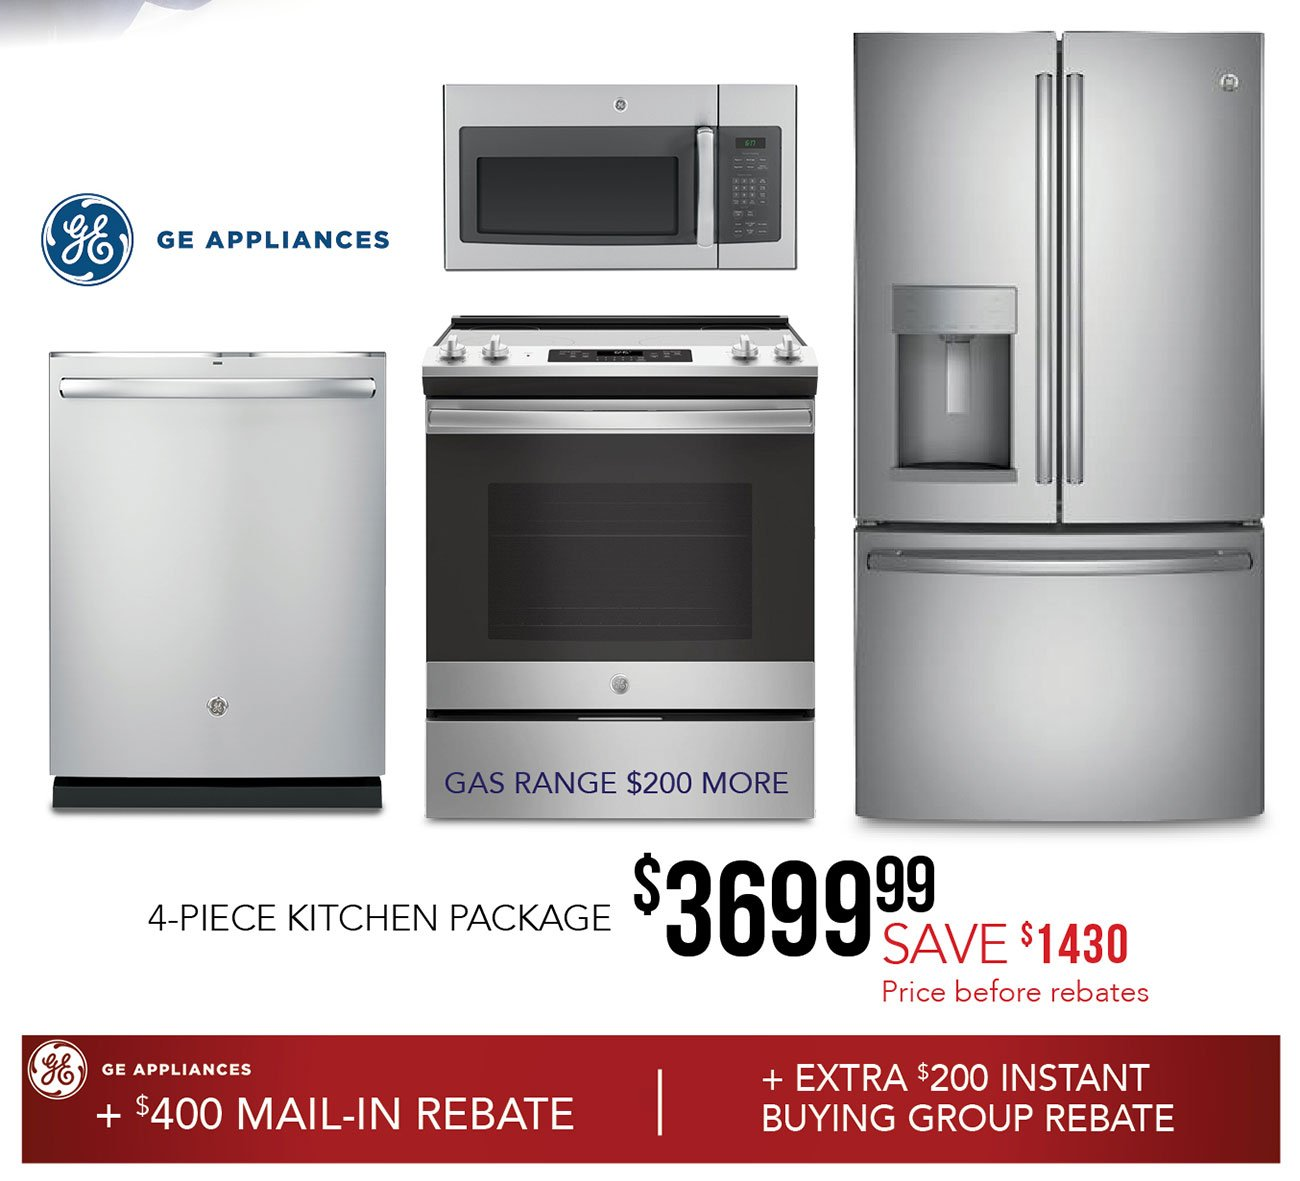 GE-kitchen-package